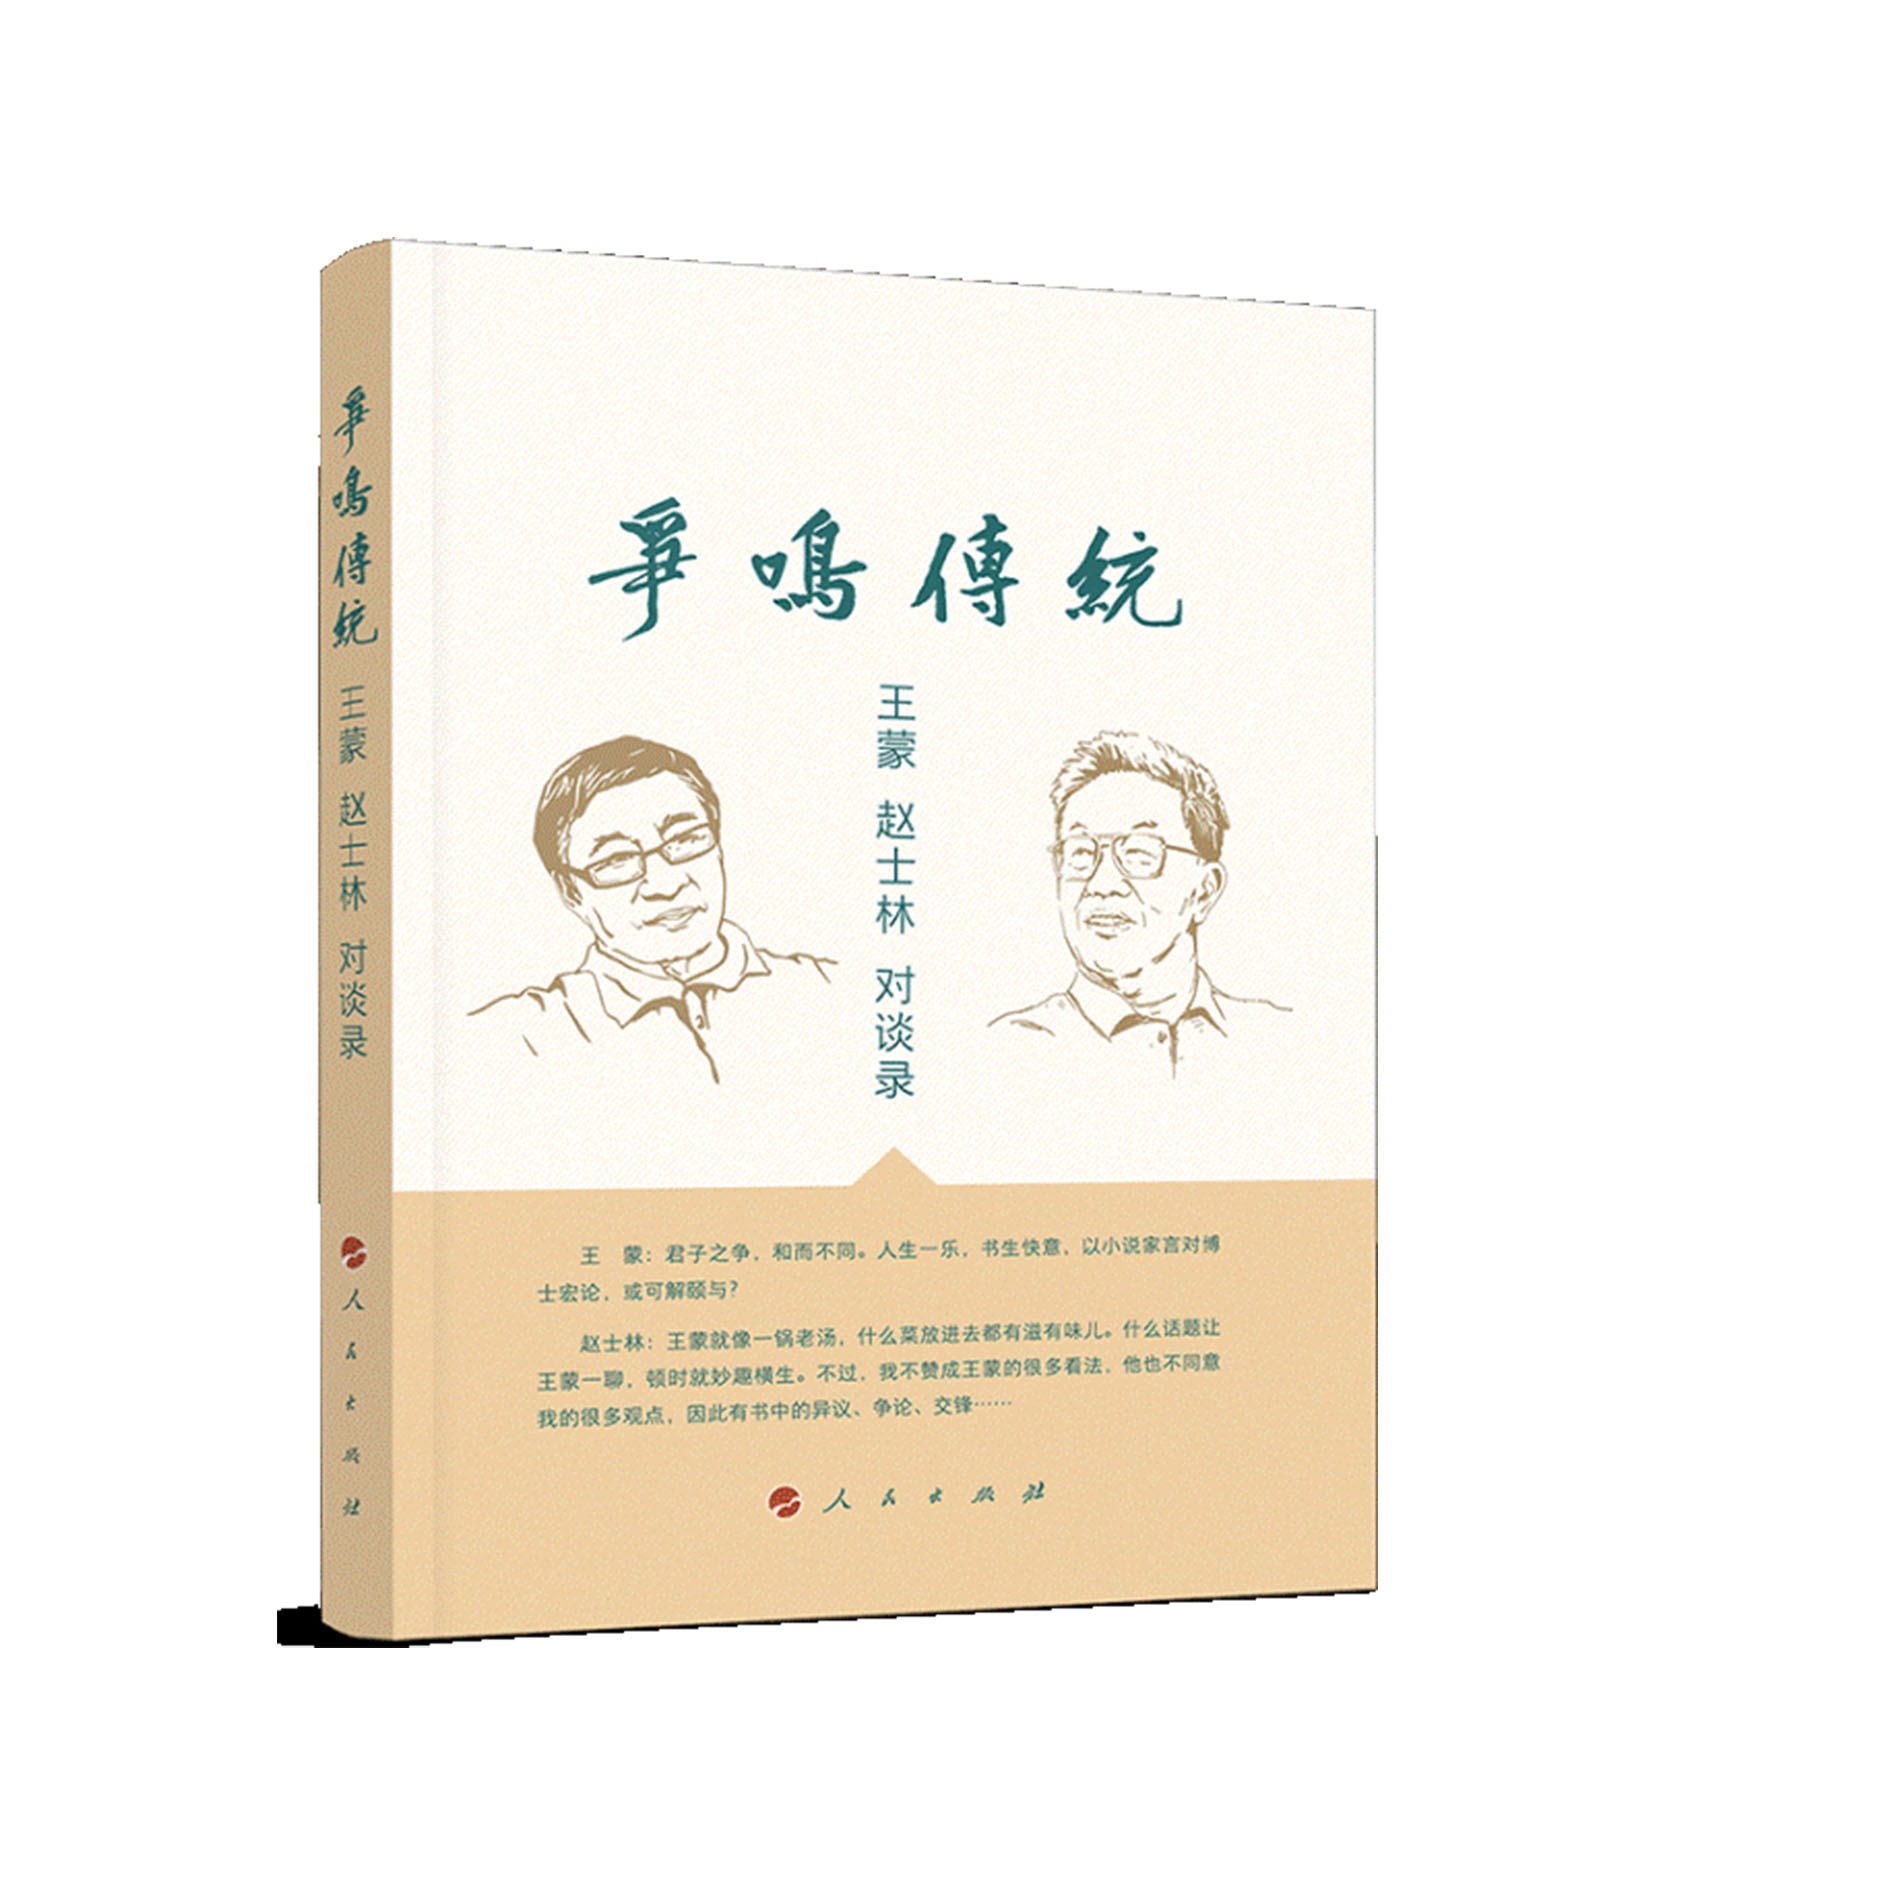 Discussion of Traditions - Conversation Record of Wang Meng and Zhao Shilin (hbk.)